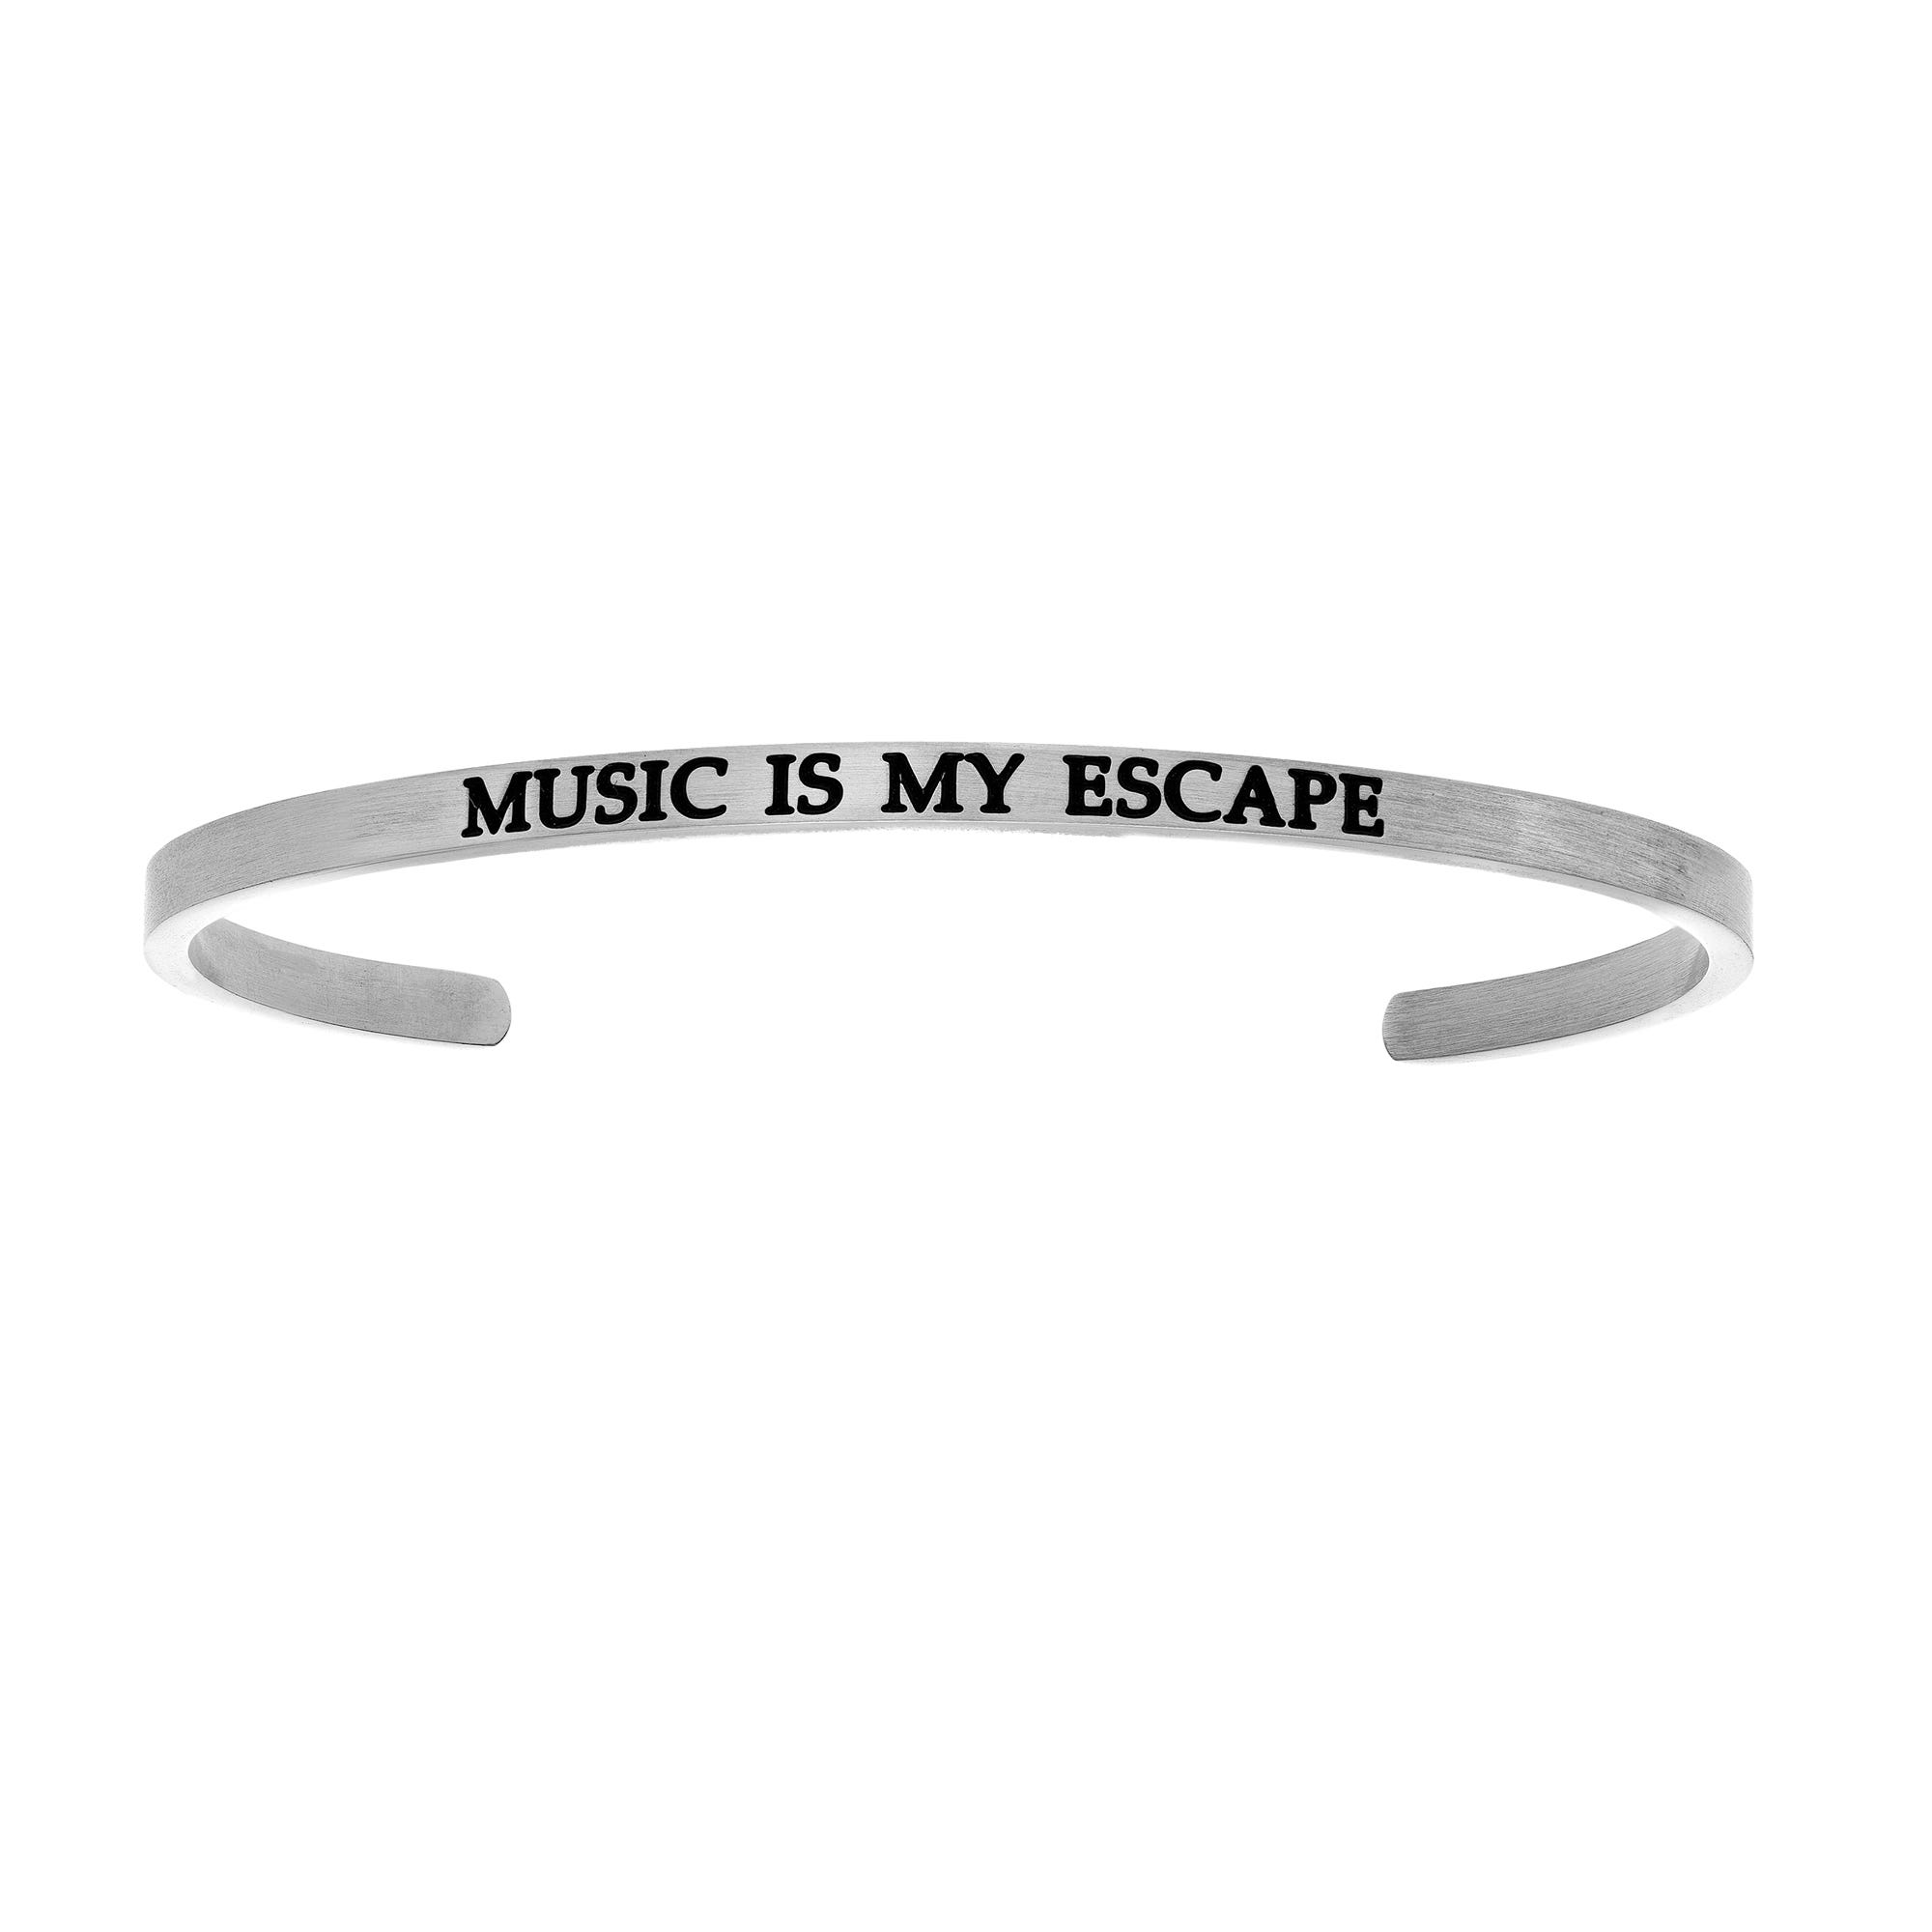 Music Is My Escape. Intuitions Cuff Bracelet in White Stainless Steel